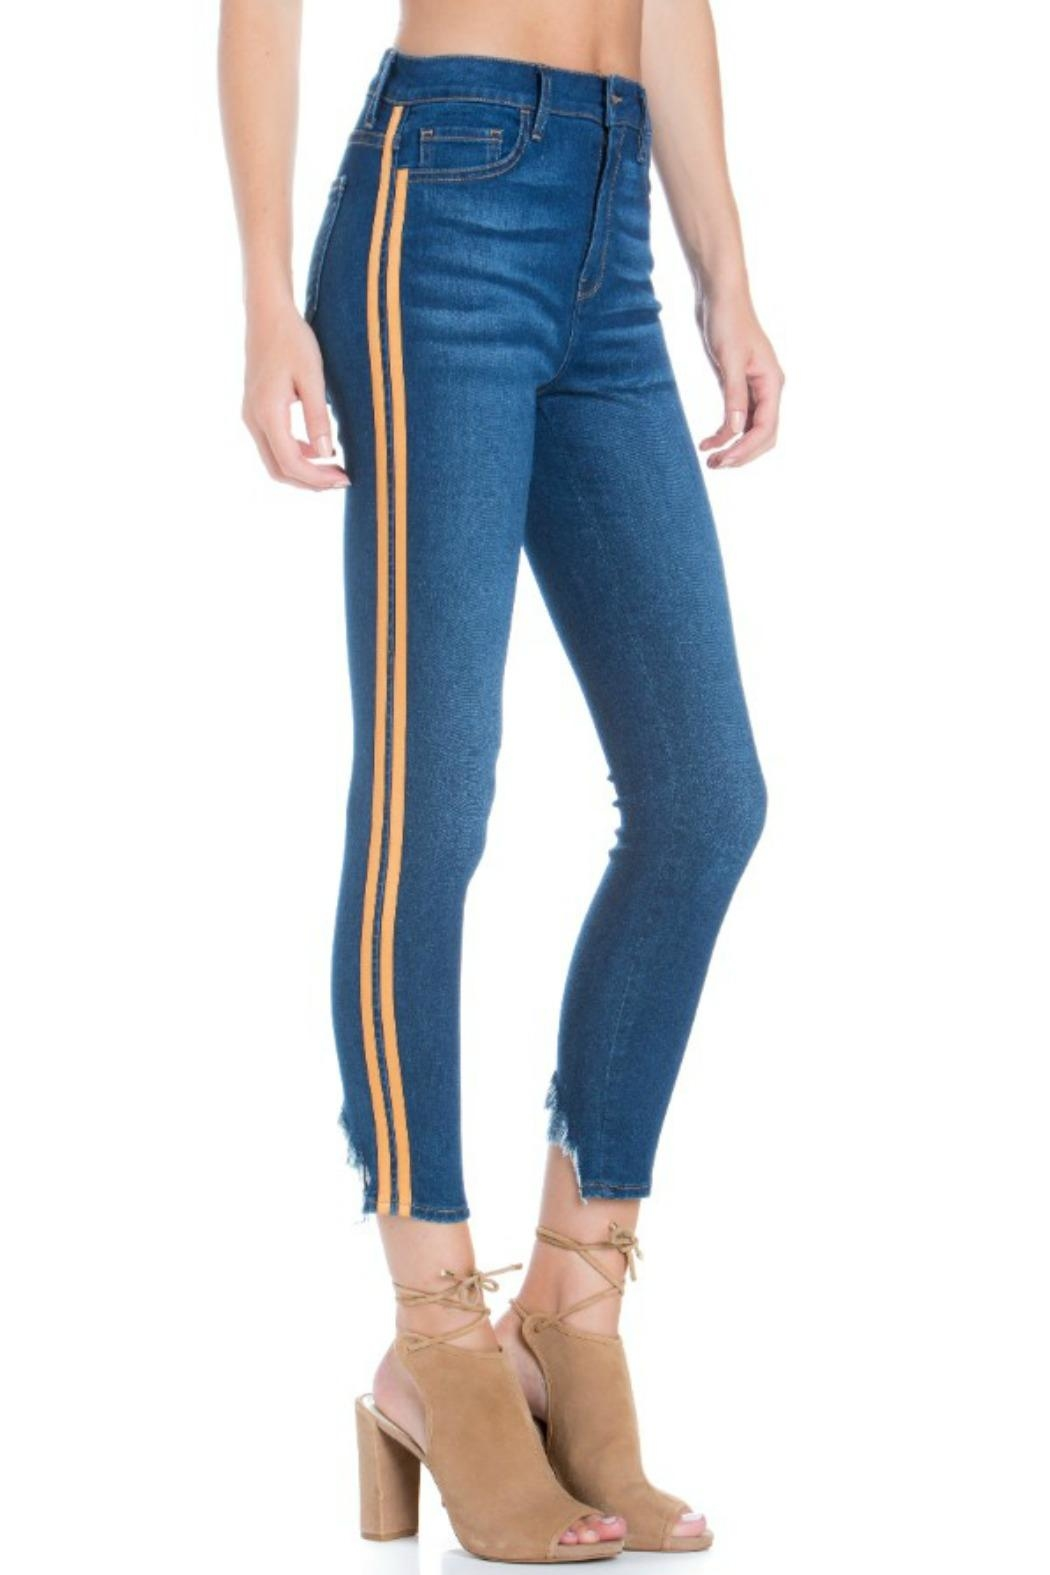 fea58ebd37 Cello Jeans Racer Stripe Skinny from Las Vegas by R+D — Shoptiques